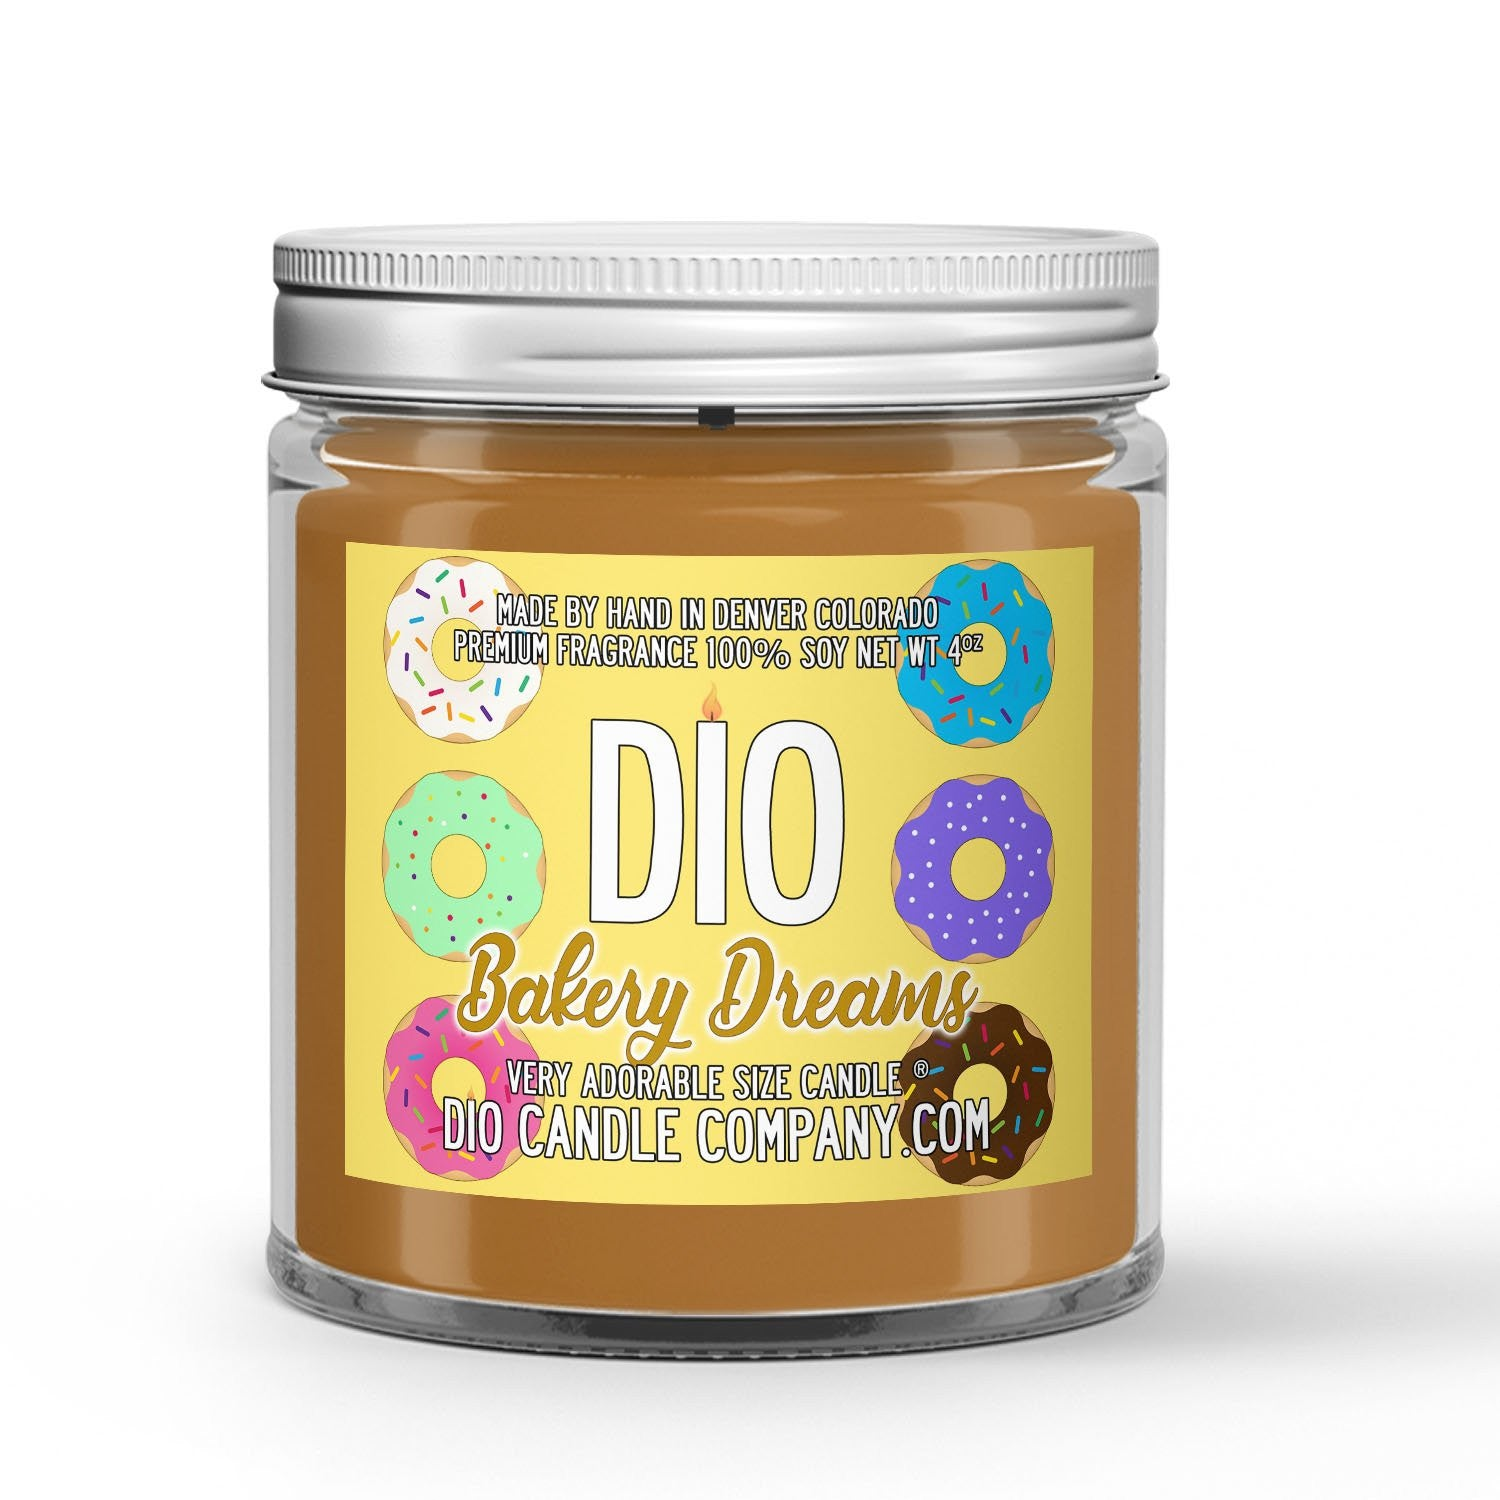 Cookies - Donuts - Pastries Scented - Bakery Dreams Candle - 4 oz - Dio Candle Company